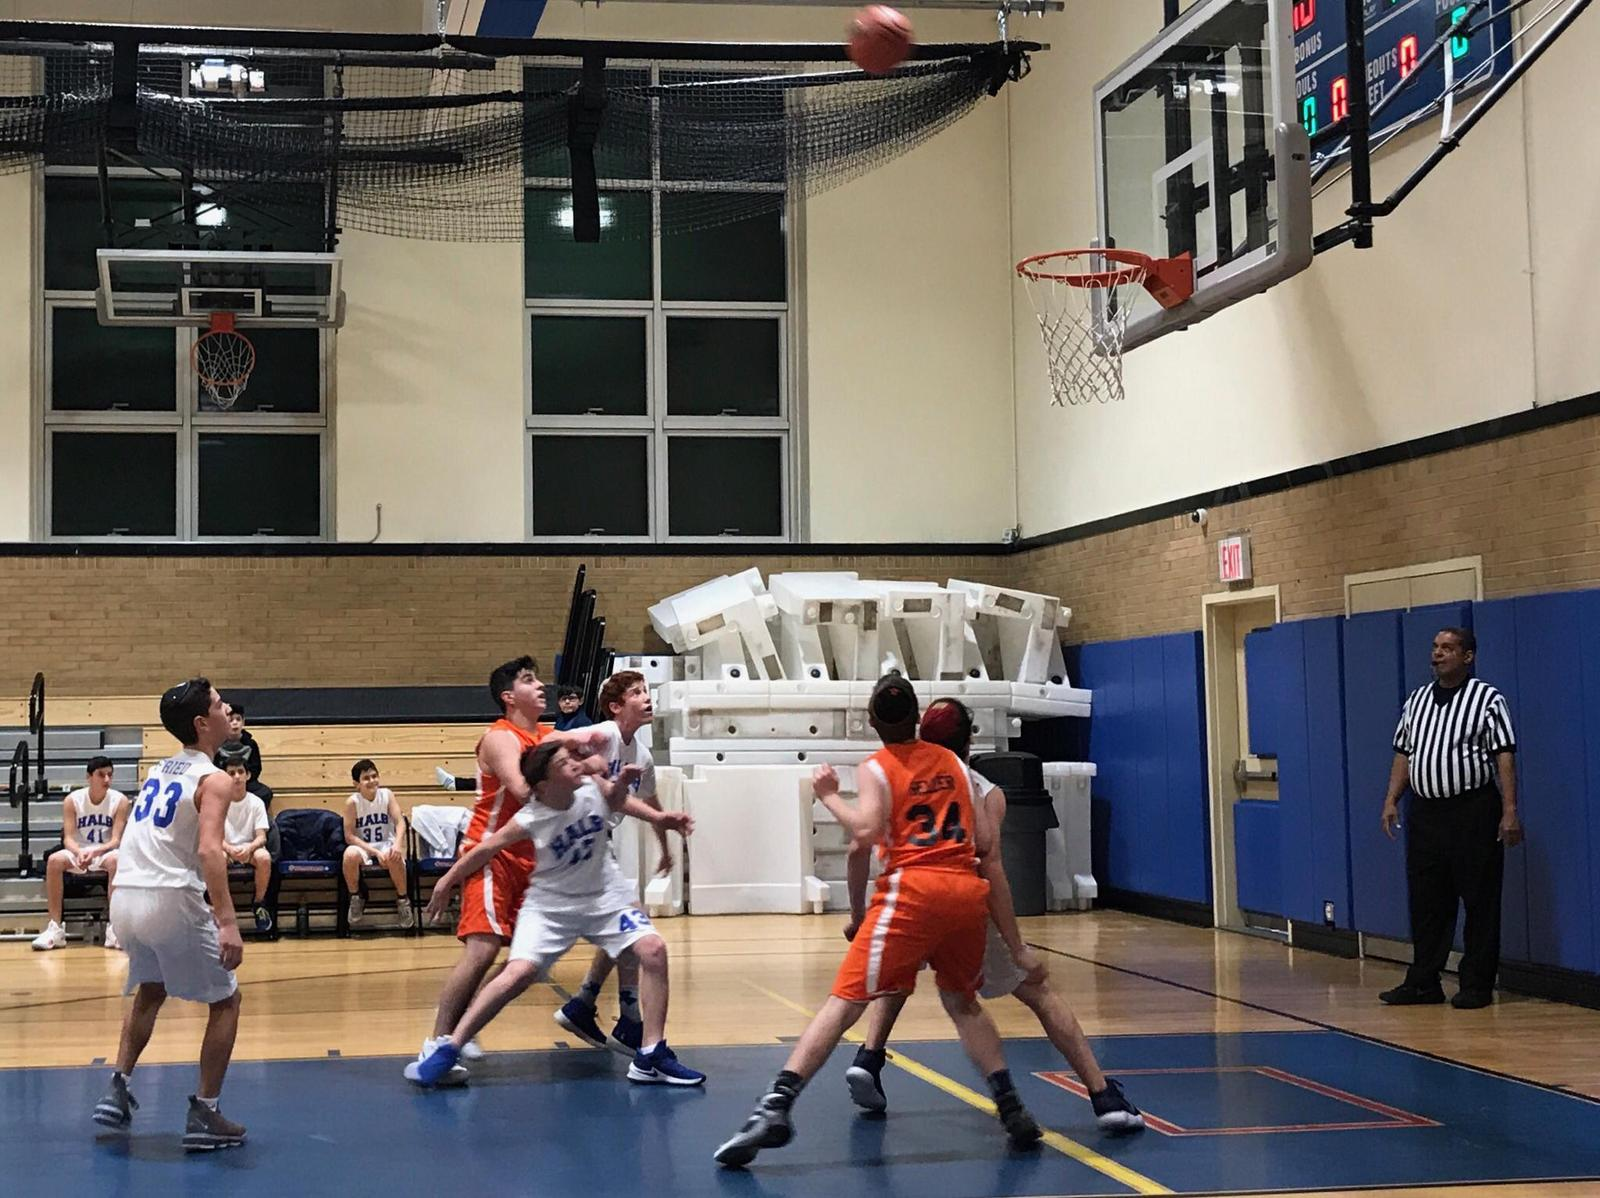 Score! Middle school students compete to shoot hoops and raise donations for IDF soldiers.